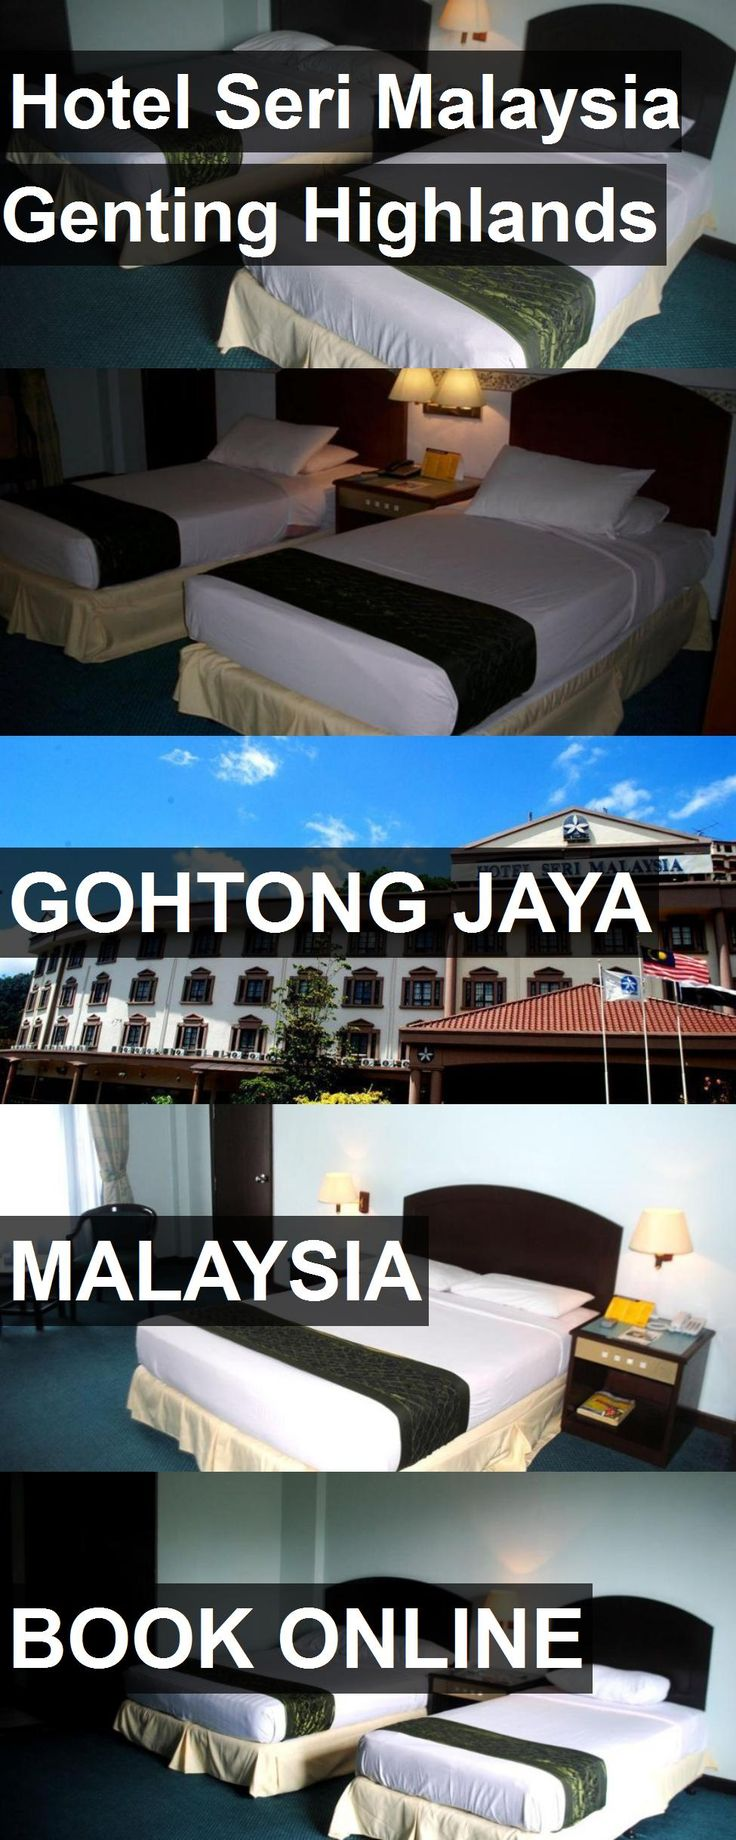 Hotel Seri Malaysia Genting Highlands in Gohtong Jaya, Malaysia. For more information, photos, reviews and best prices please follow the link. #Malaysia #GohtongJaya #travel #vacation #hotel